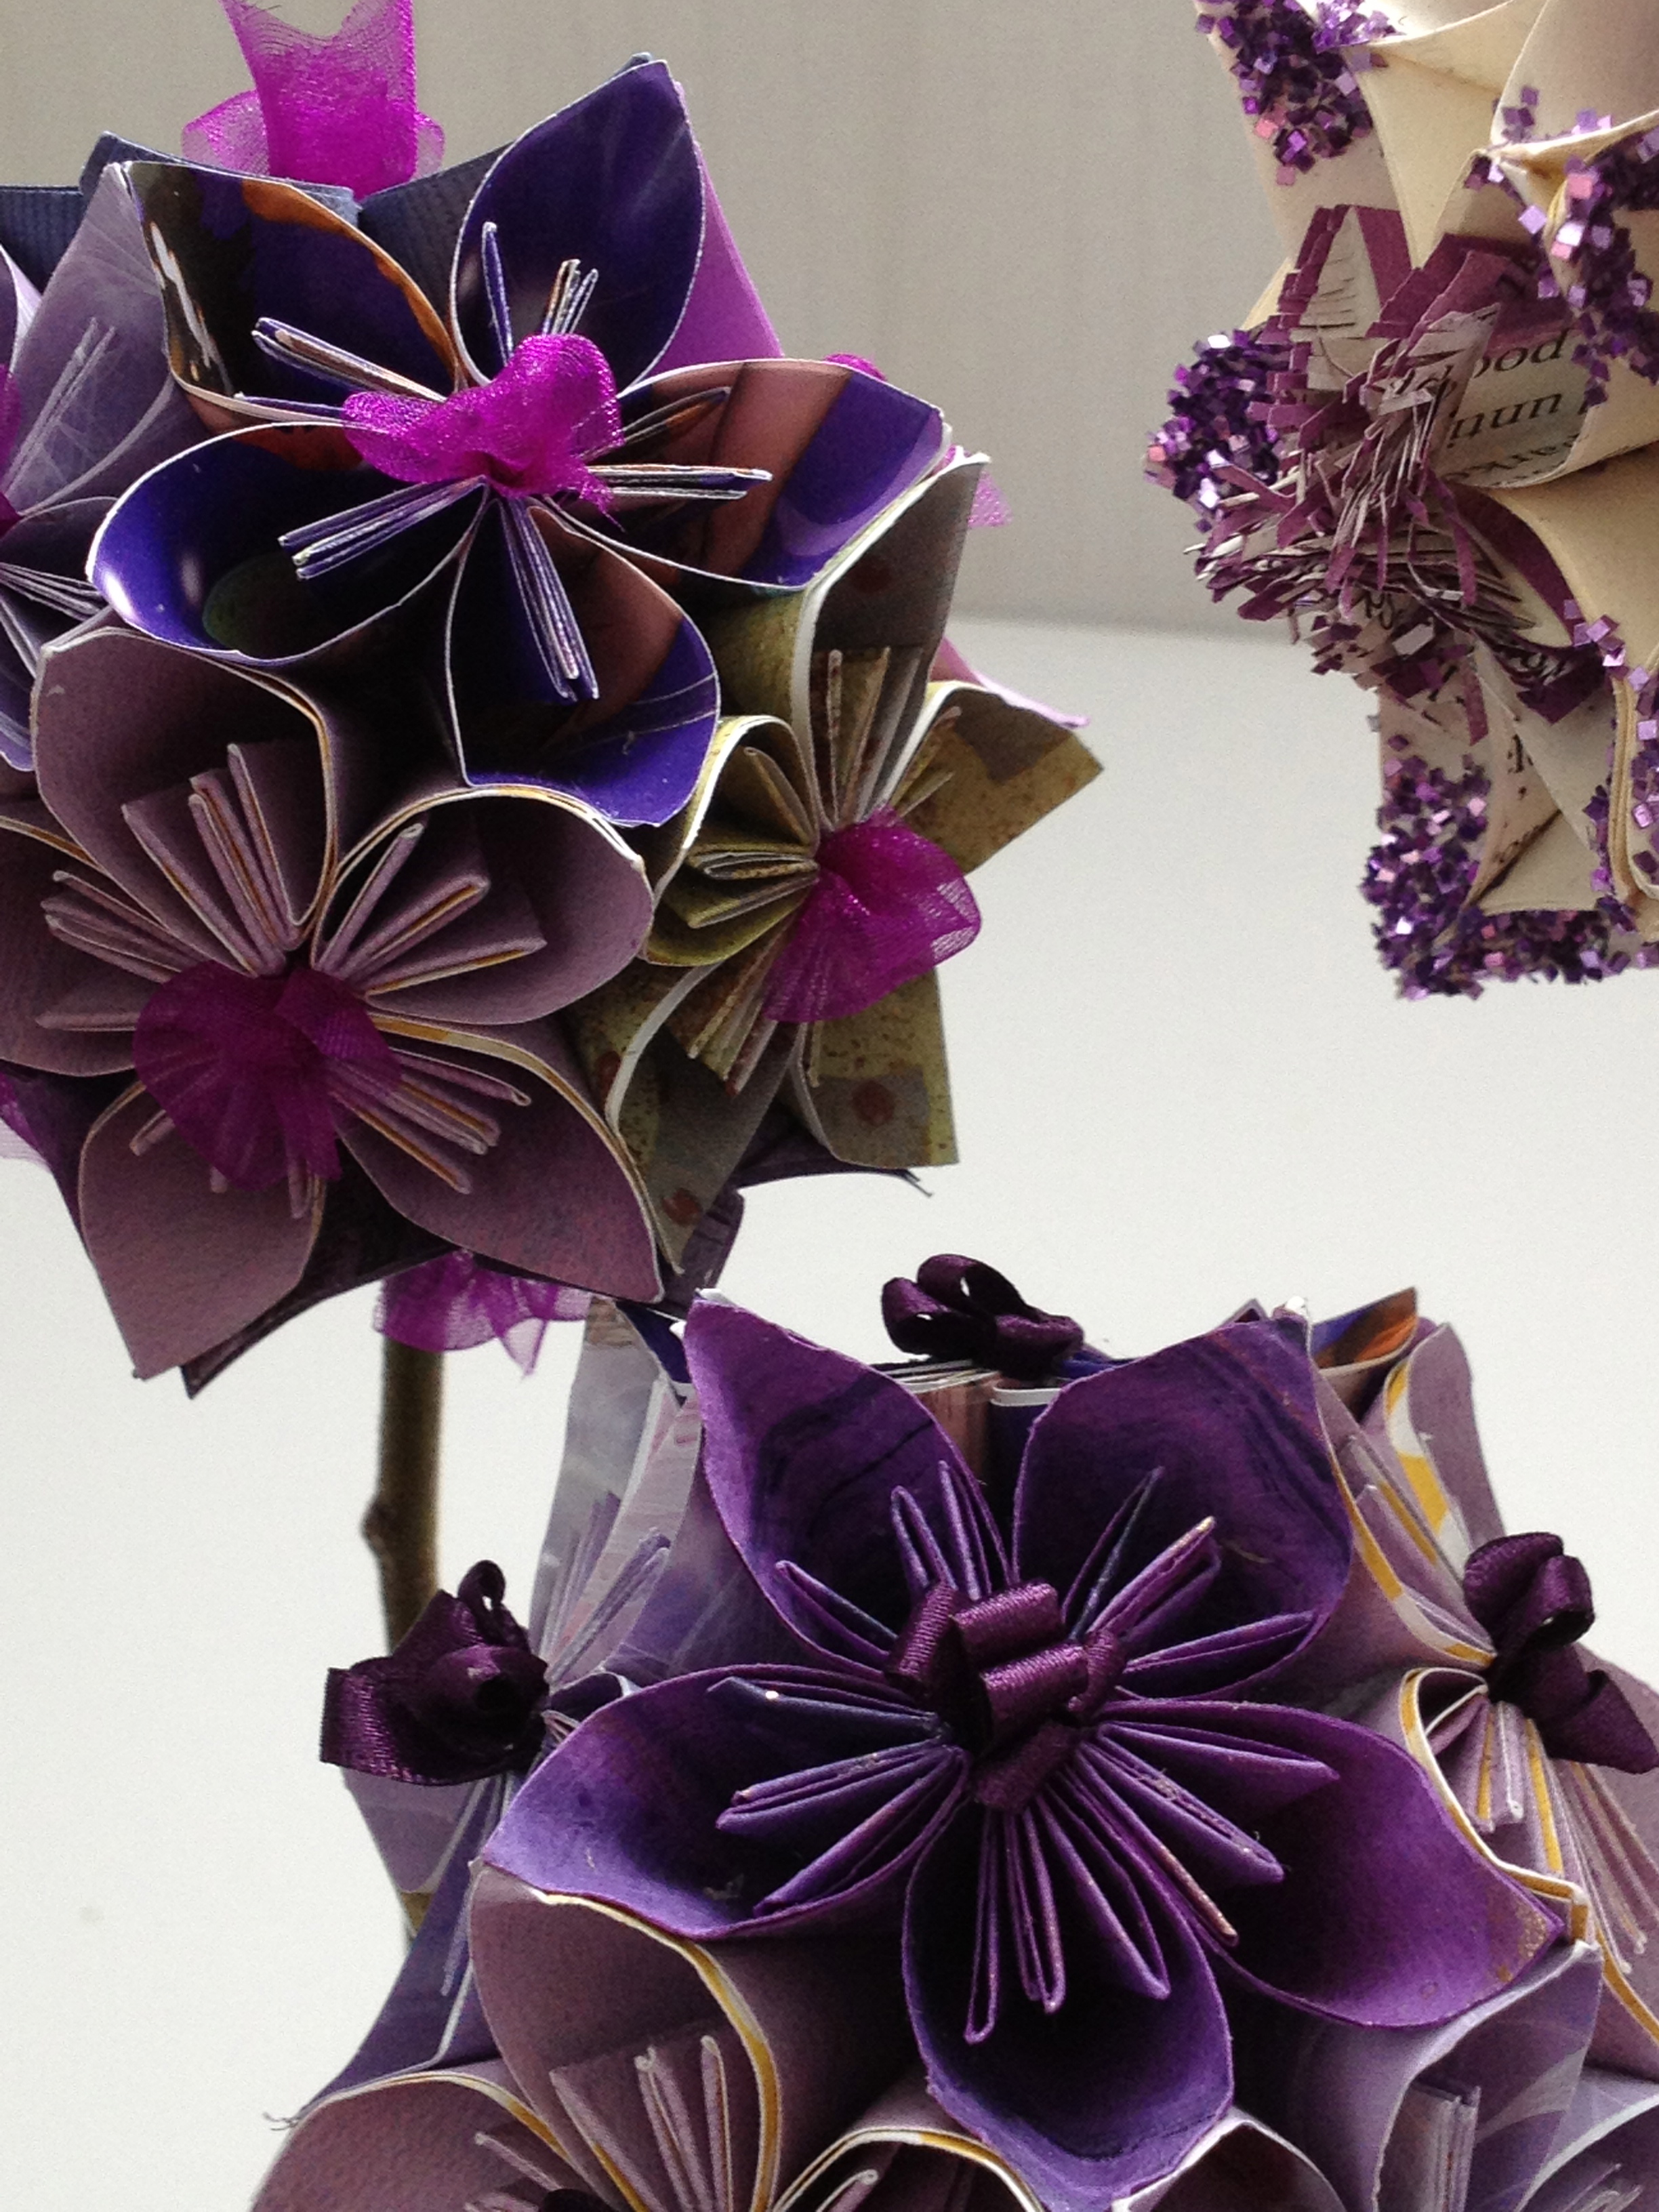 Christmas purple paper house origami paper flower ball tuesday 31st january friday 17th january mightylinksfo